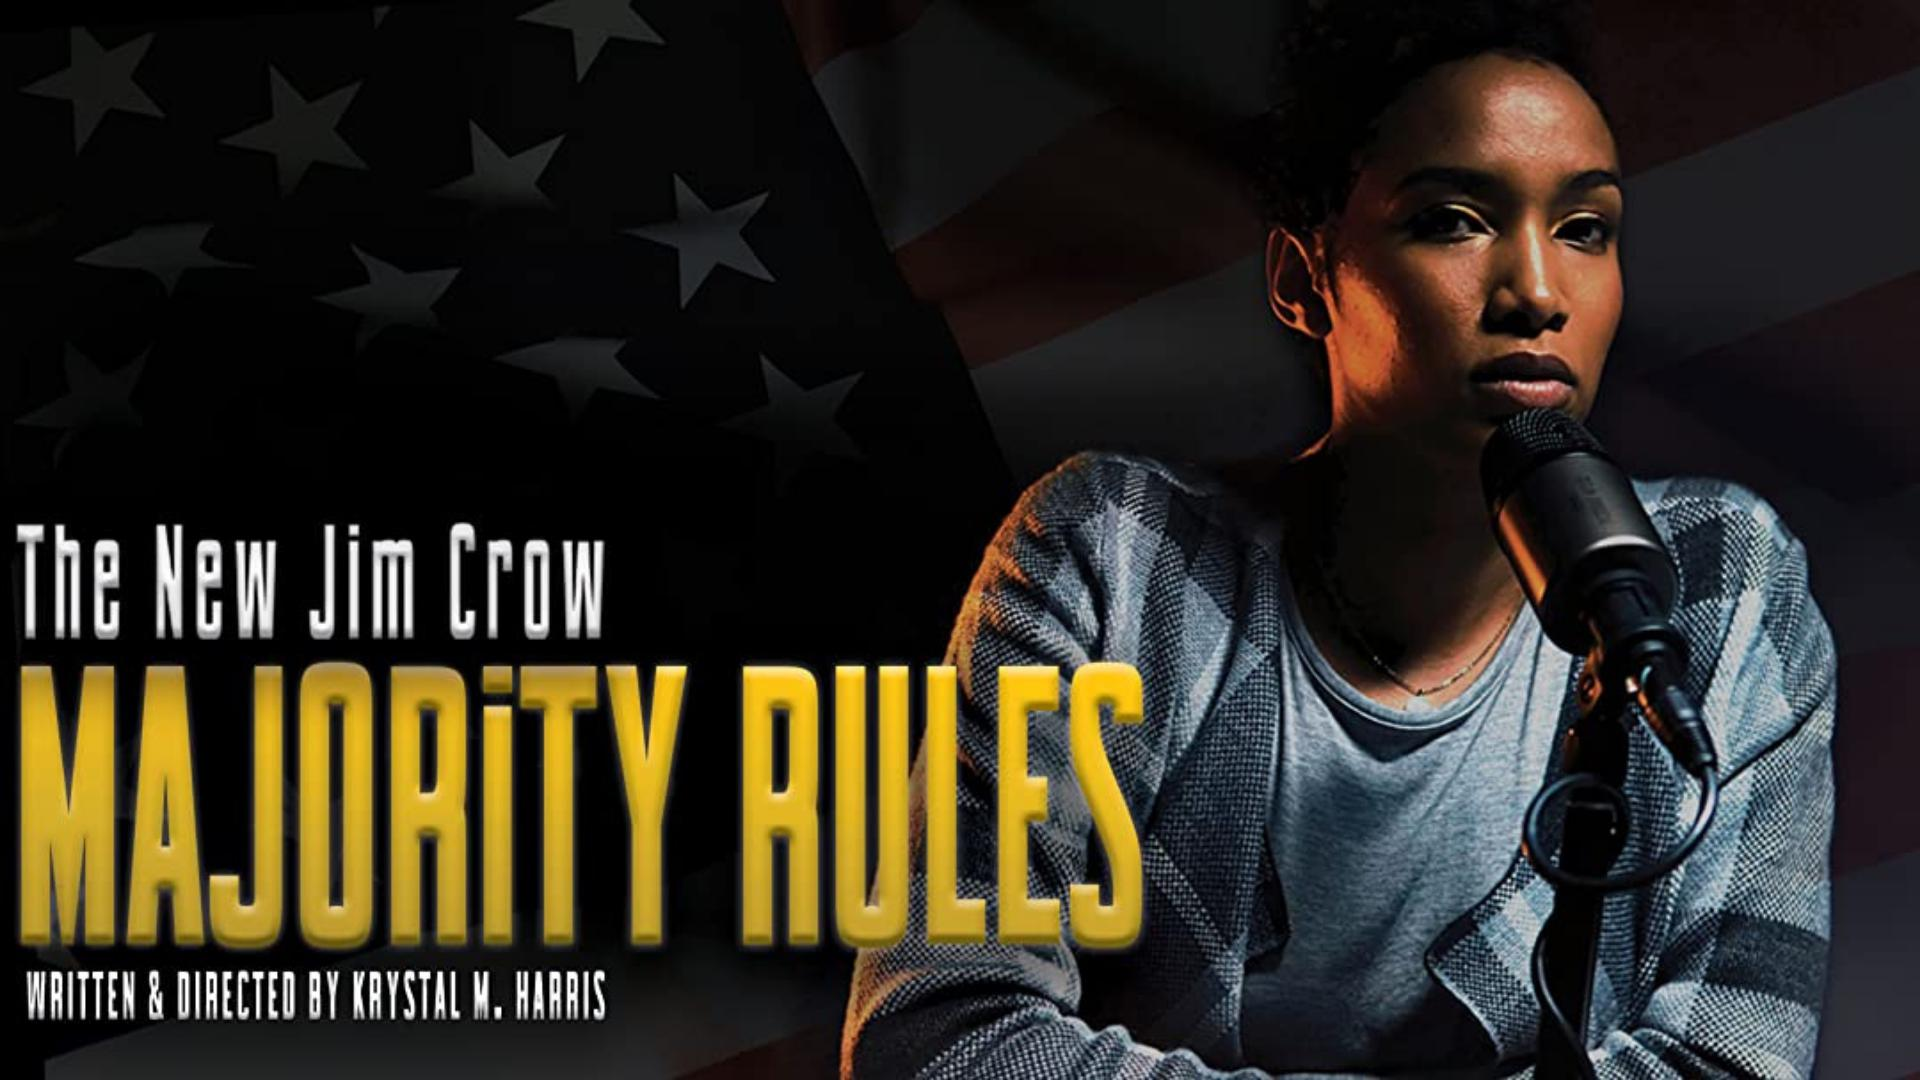 The New Jim Crow: Majority Rules